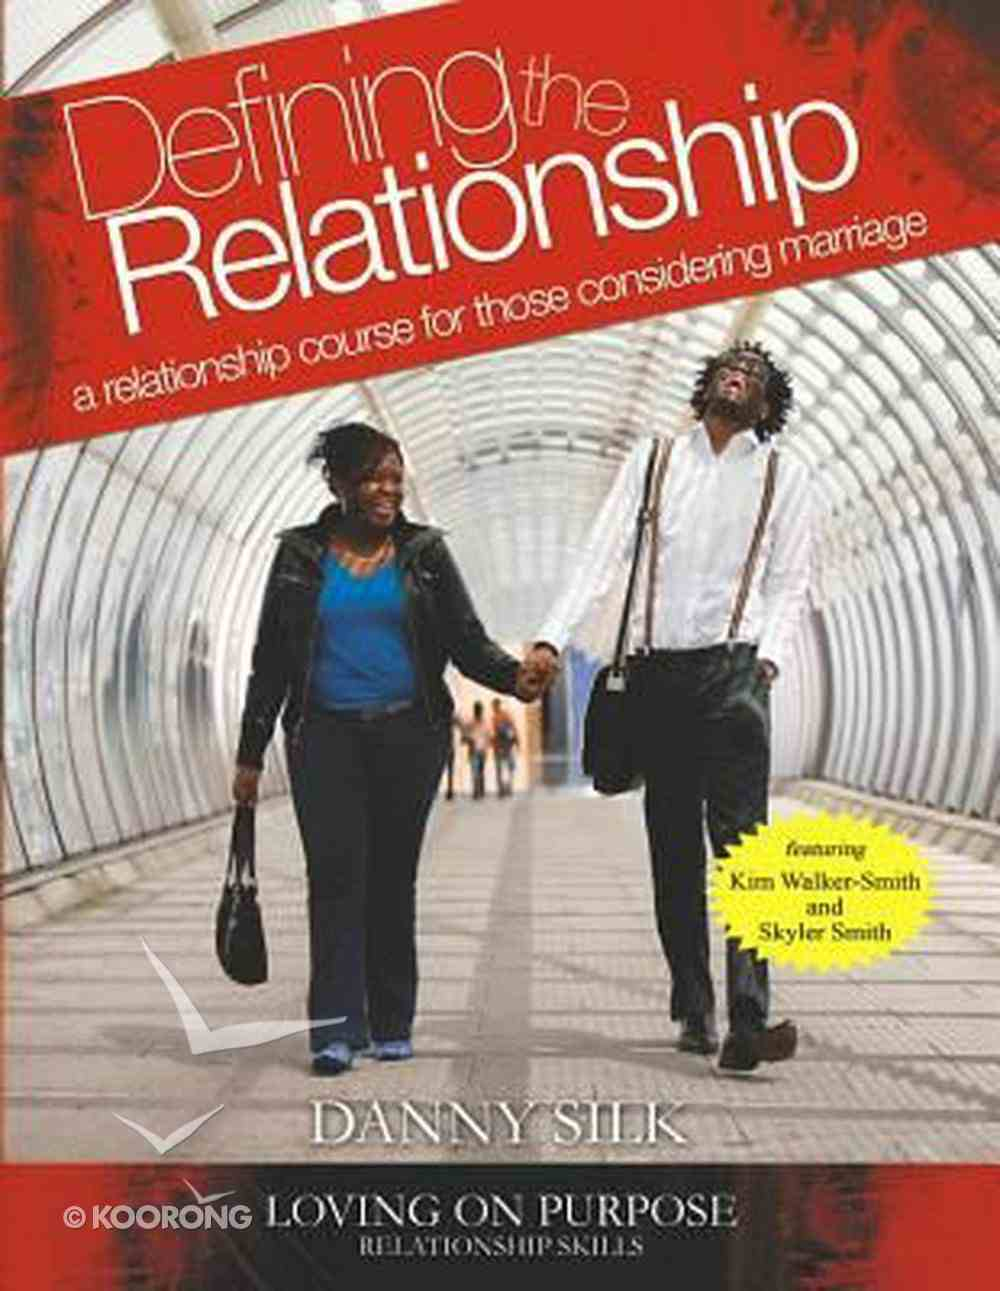 Defining the Relationship: A Relationship Course For Those Considering Marriage (Manual) Paperback